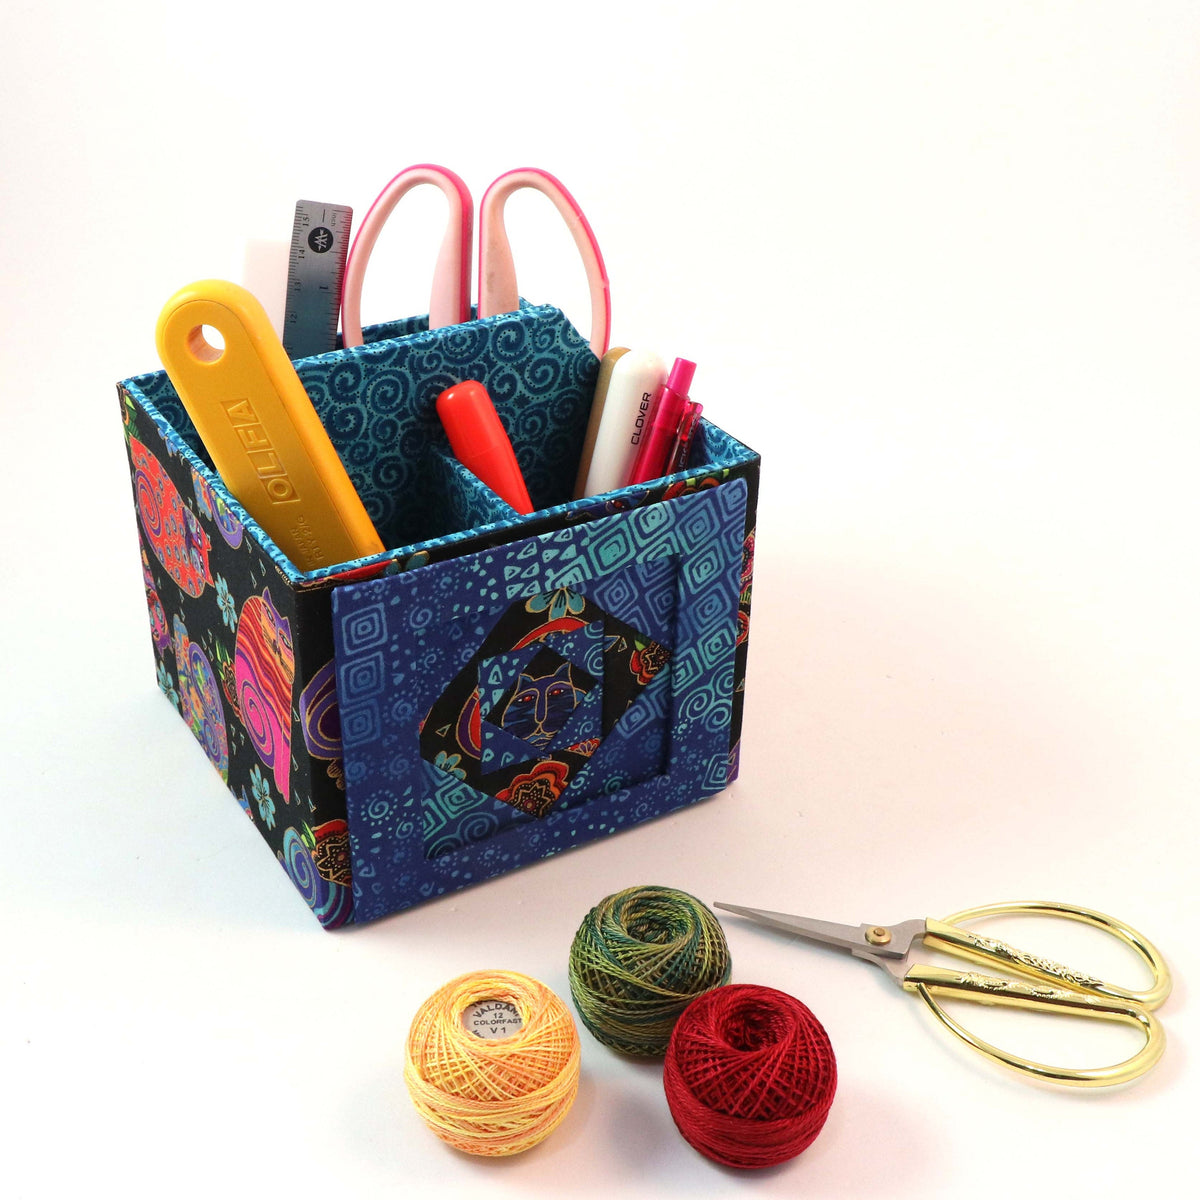 Fabric photo art caddy DIY kit, picture cube, photo caddy, cartonnage kit 185, Online instructions included - Colorway Arts